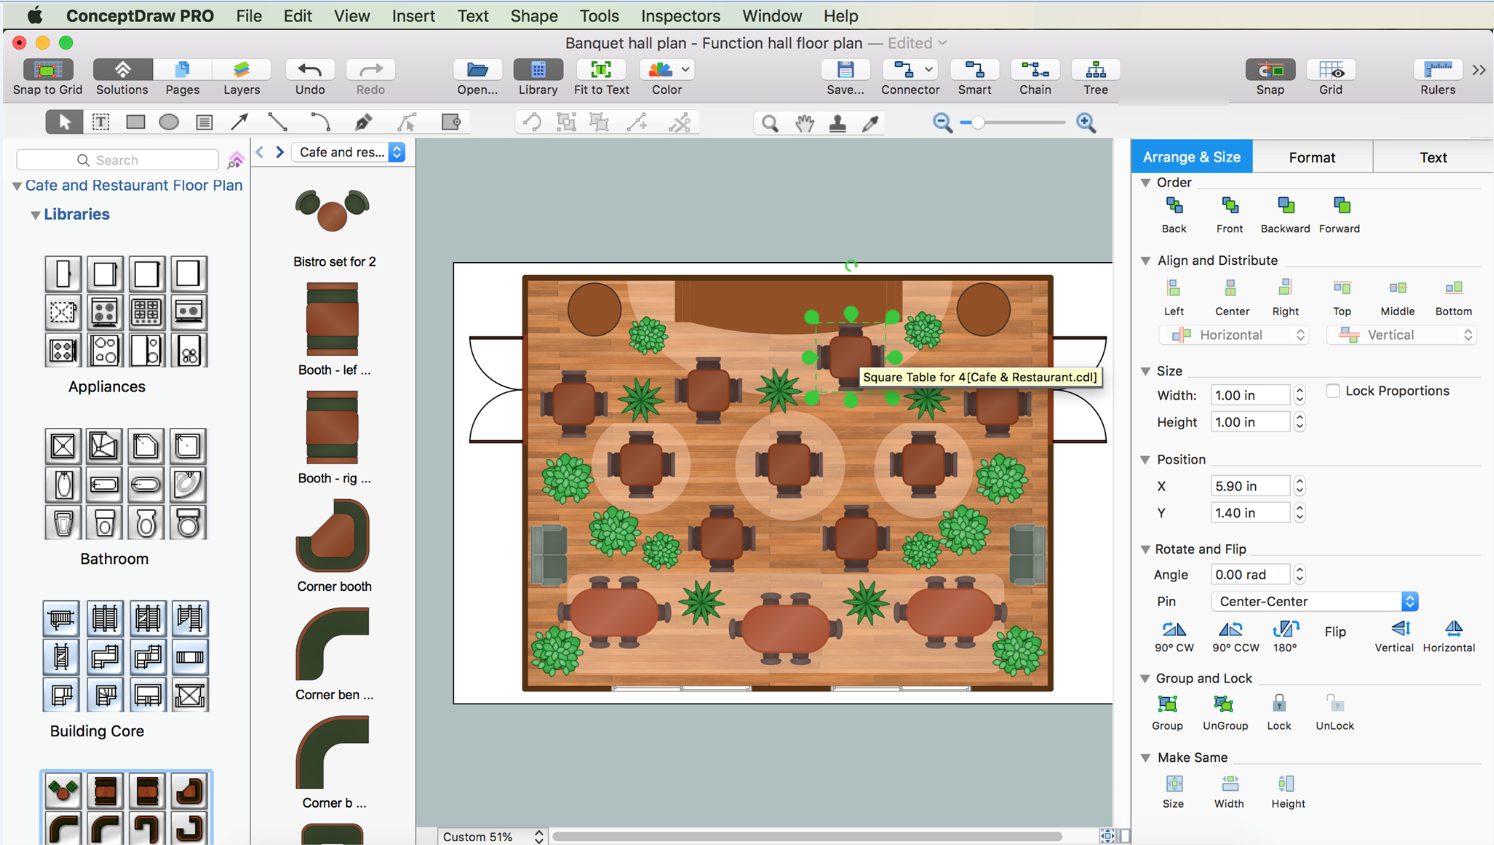 Banquet Hall Floor Plan Made In Conceptdraw Pro V11 On Macos